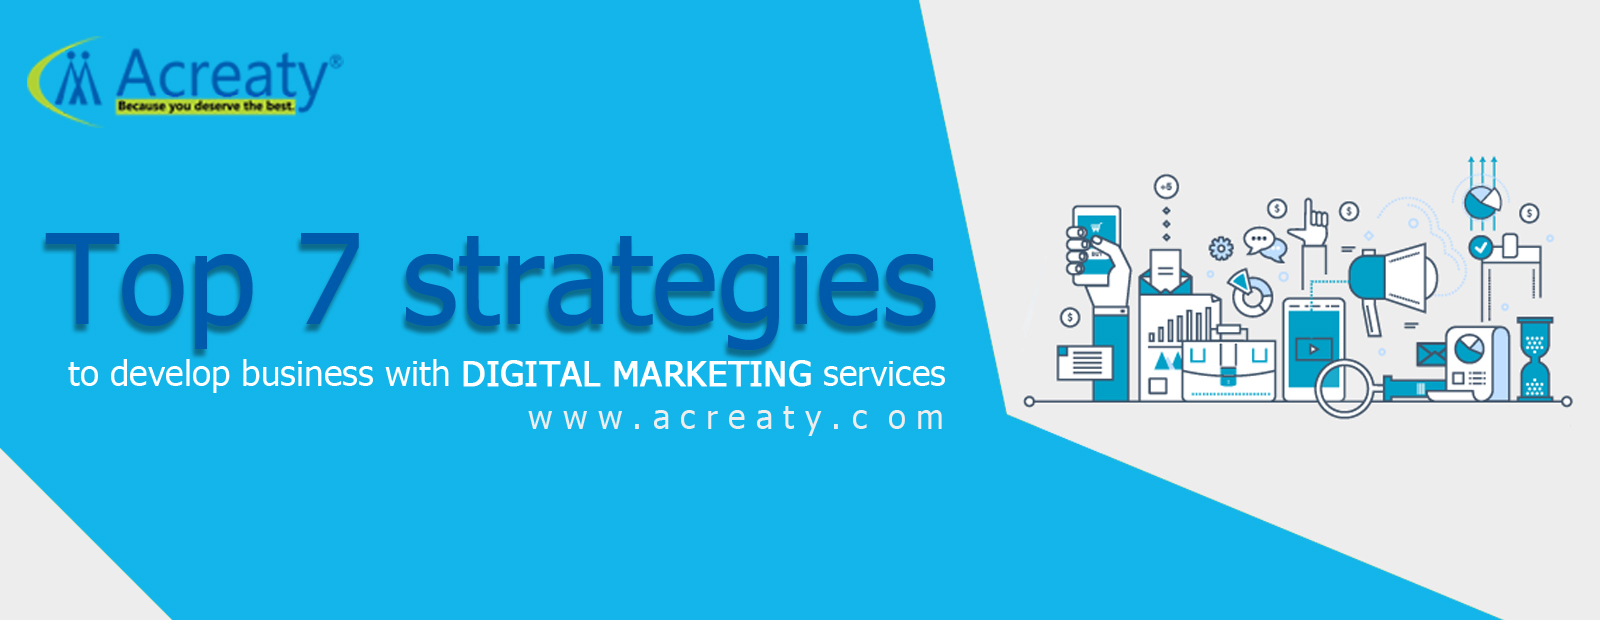 Top 7 strategies to develop business with digital marketing services